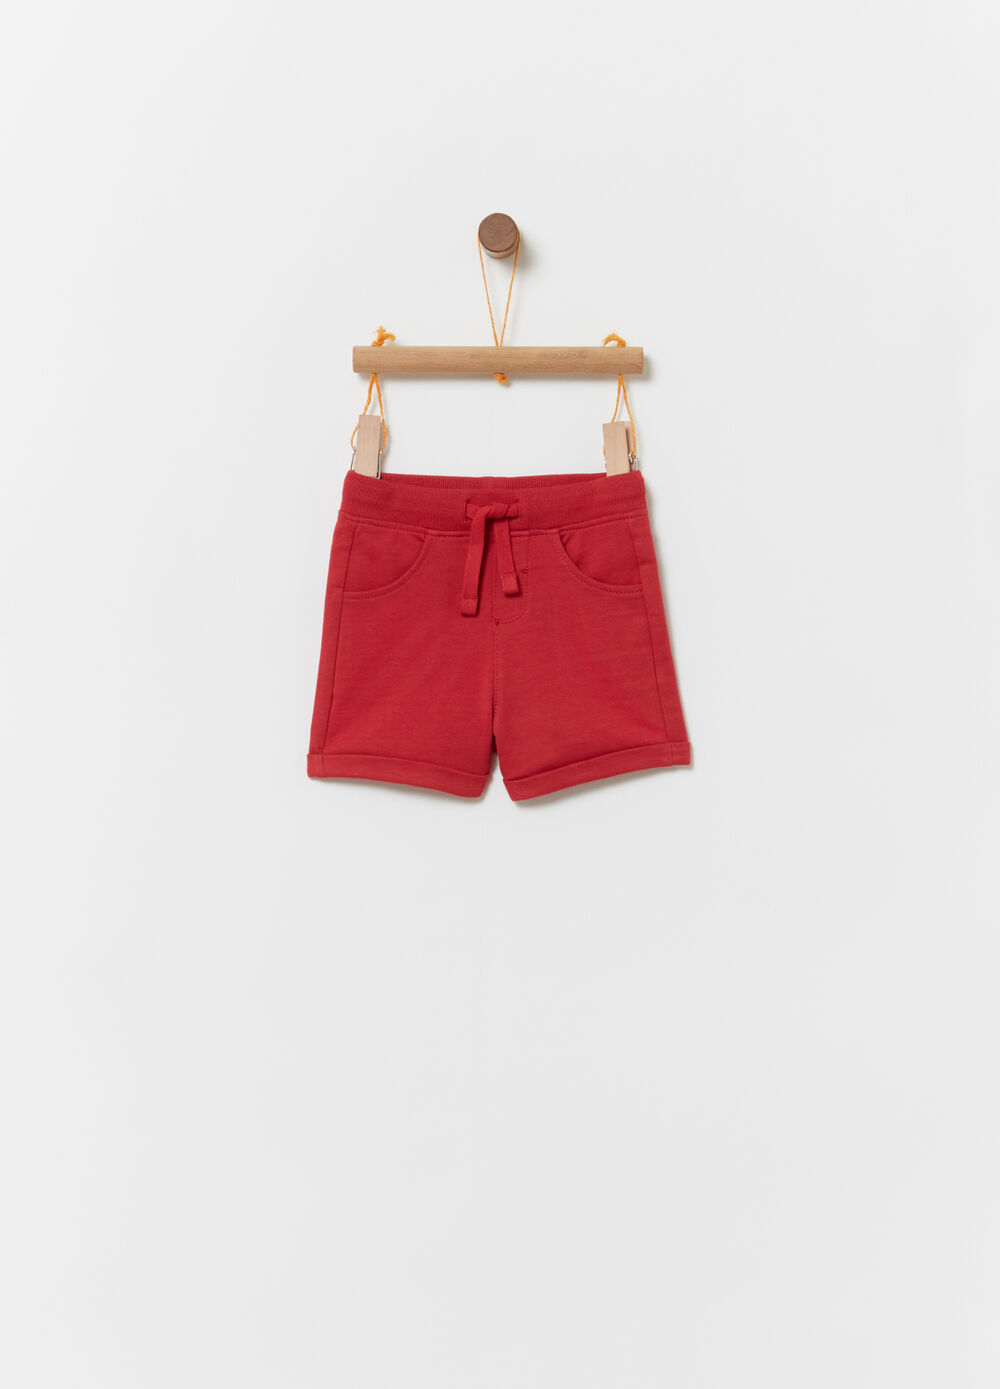 Shorts in French Terry with drawstring